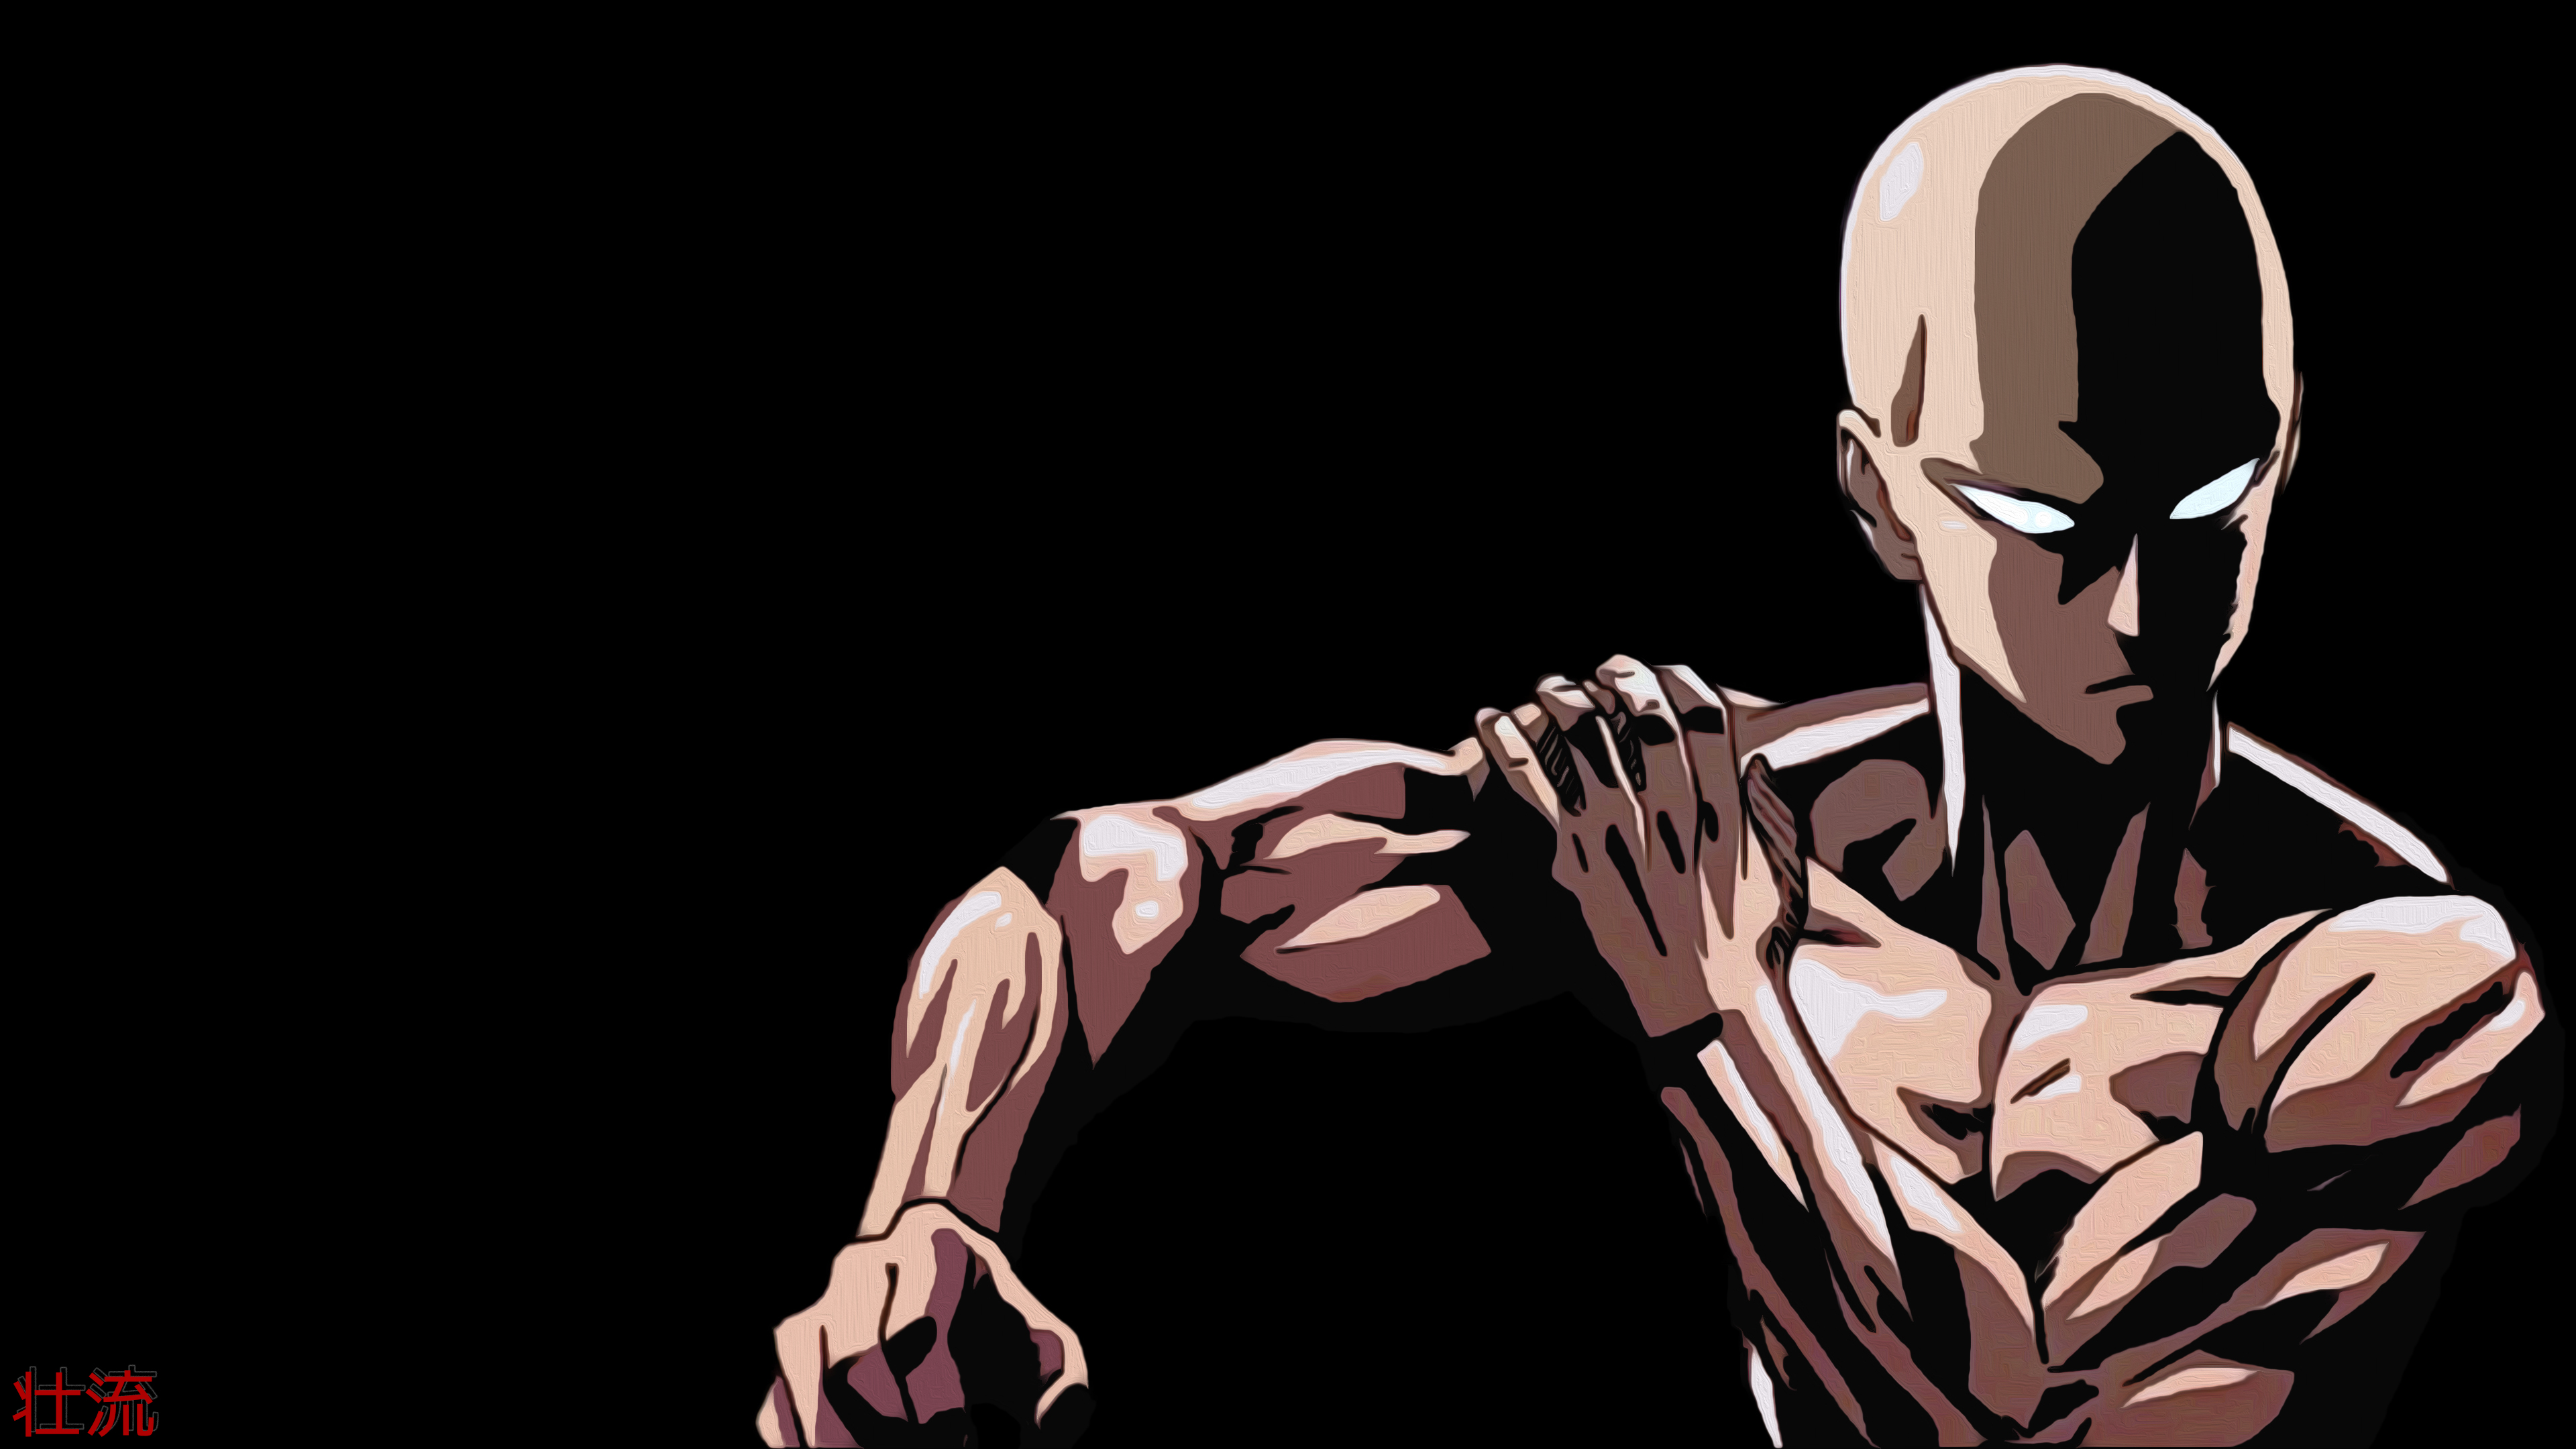 Search free one punch man wallpapers on zedge and personalize your phone to suit you. Saitama's power 4k Ultra HD Wallpaper | Achtergrond ...